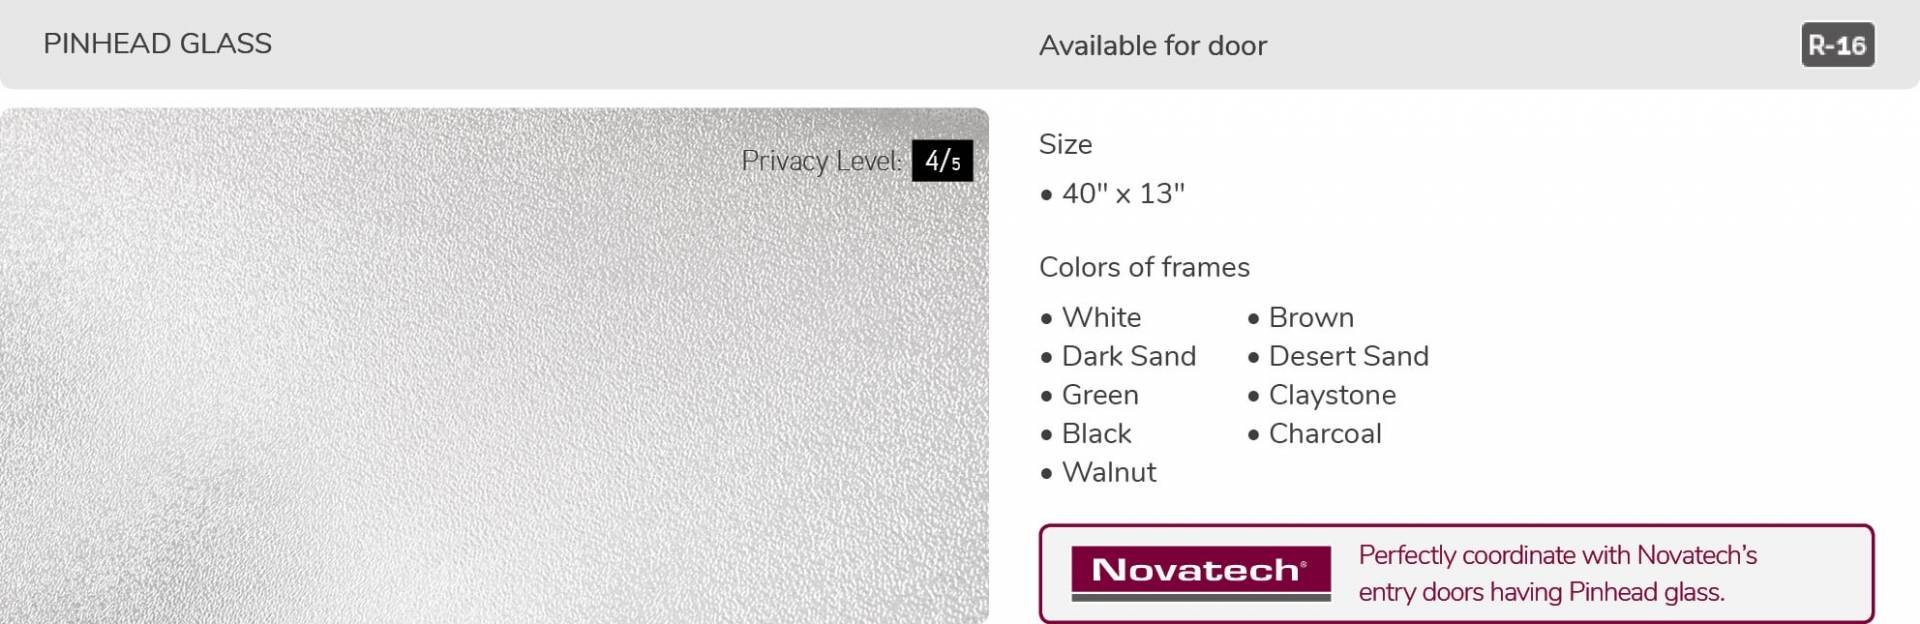 Pinhead glass, 40' x 13', available for door R-16